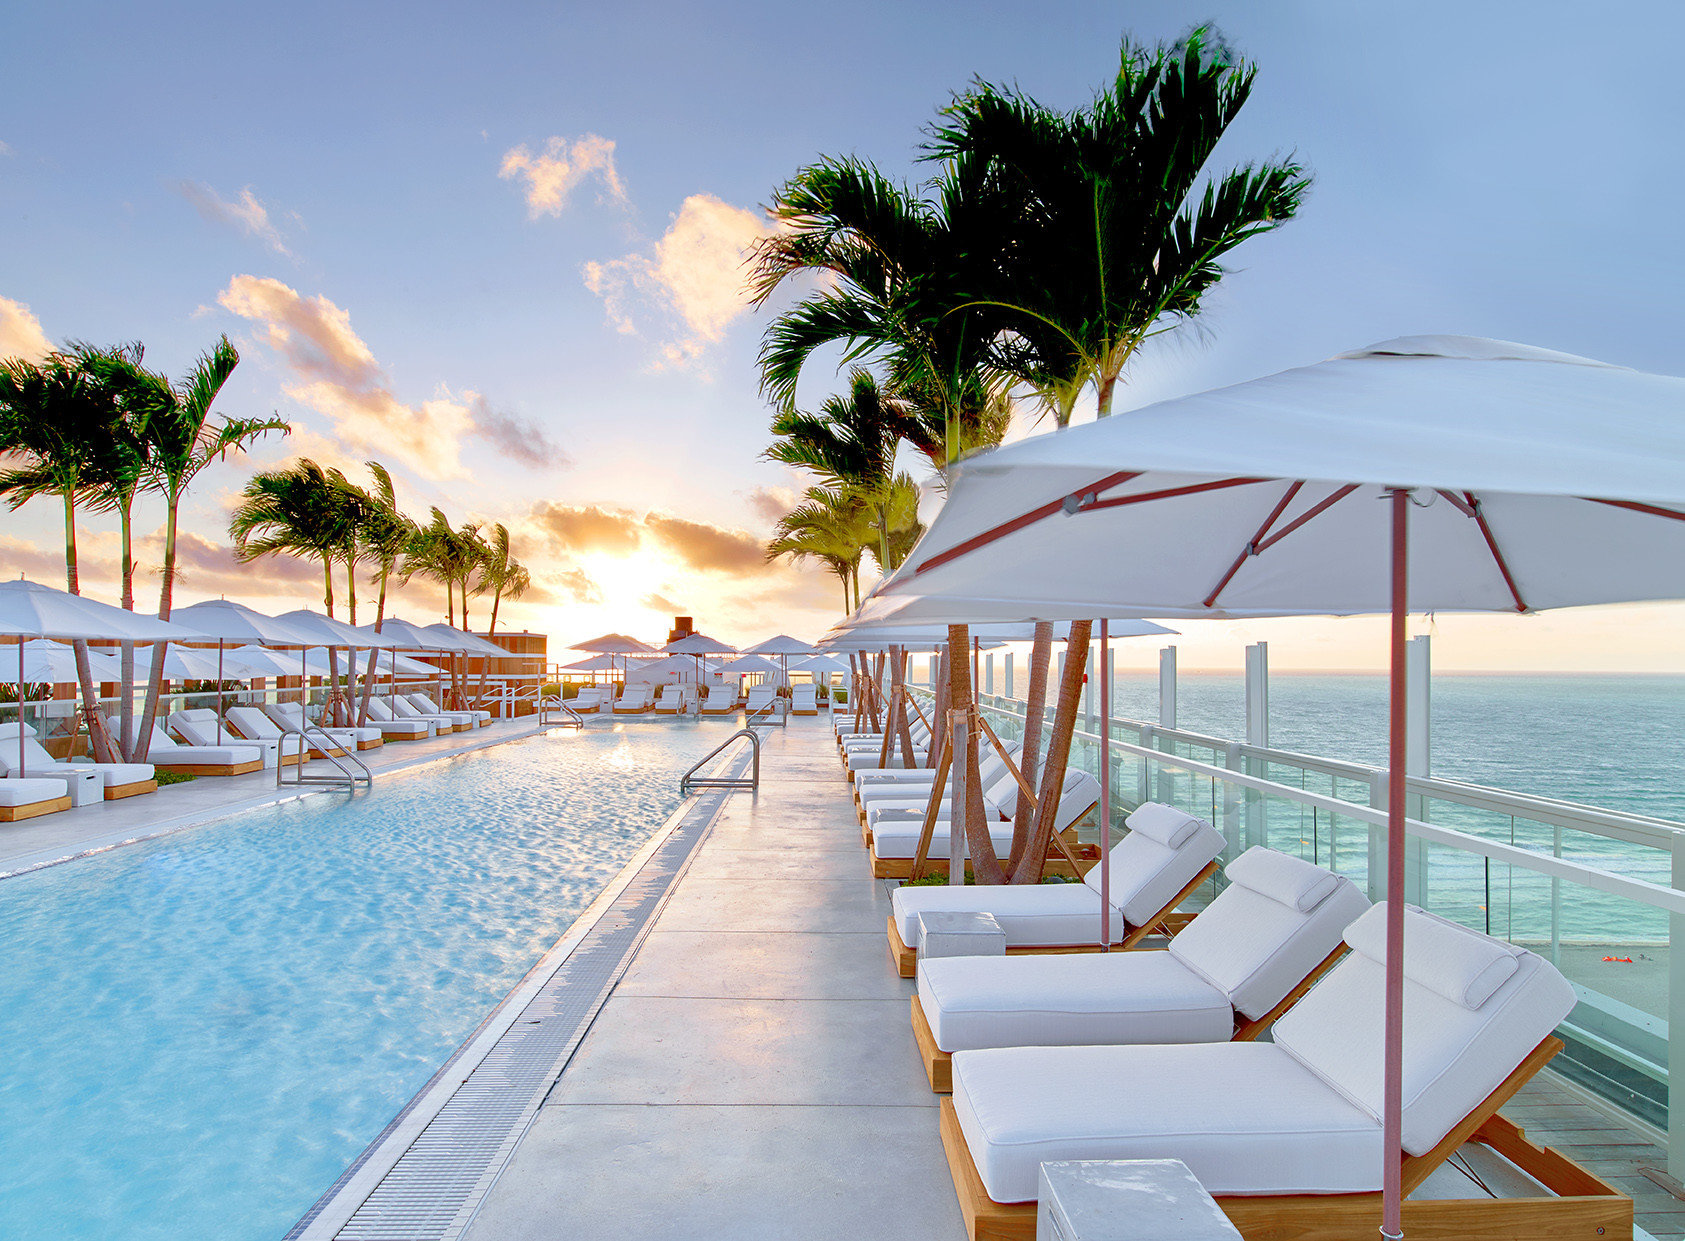 City Hotels Luxury Miami Miami Beach Romance Trip Ideas outdoor sky tree leisure chair Beach swimming pool vacation Resort caribbean Sea Ocean arecales marina dock estate walkway shore lined accessory furniture set sandy several